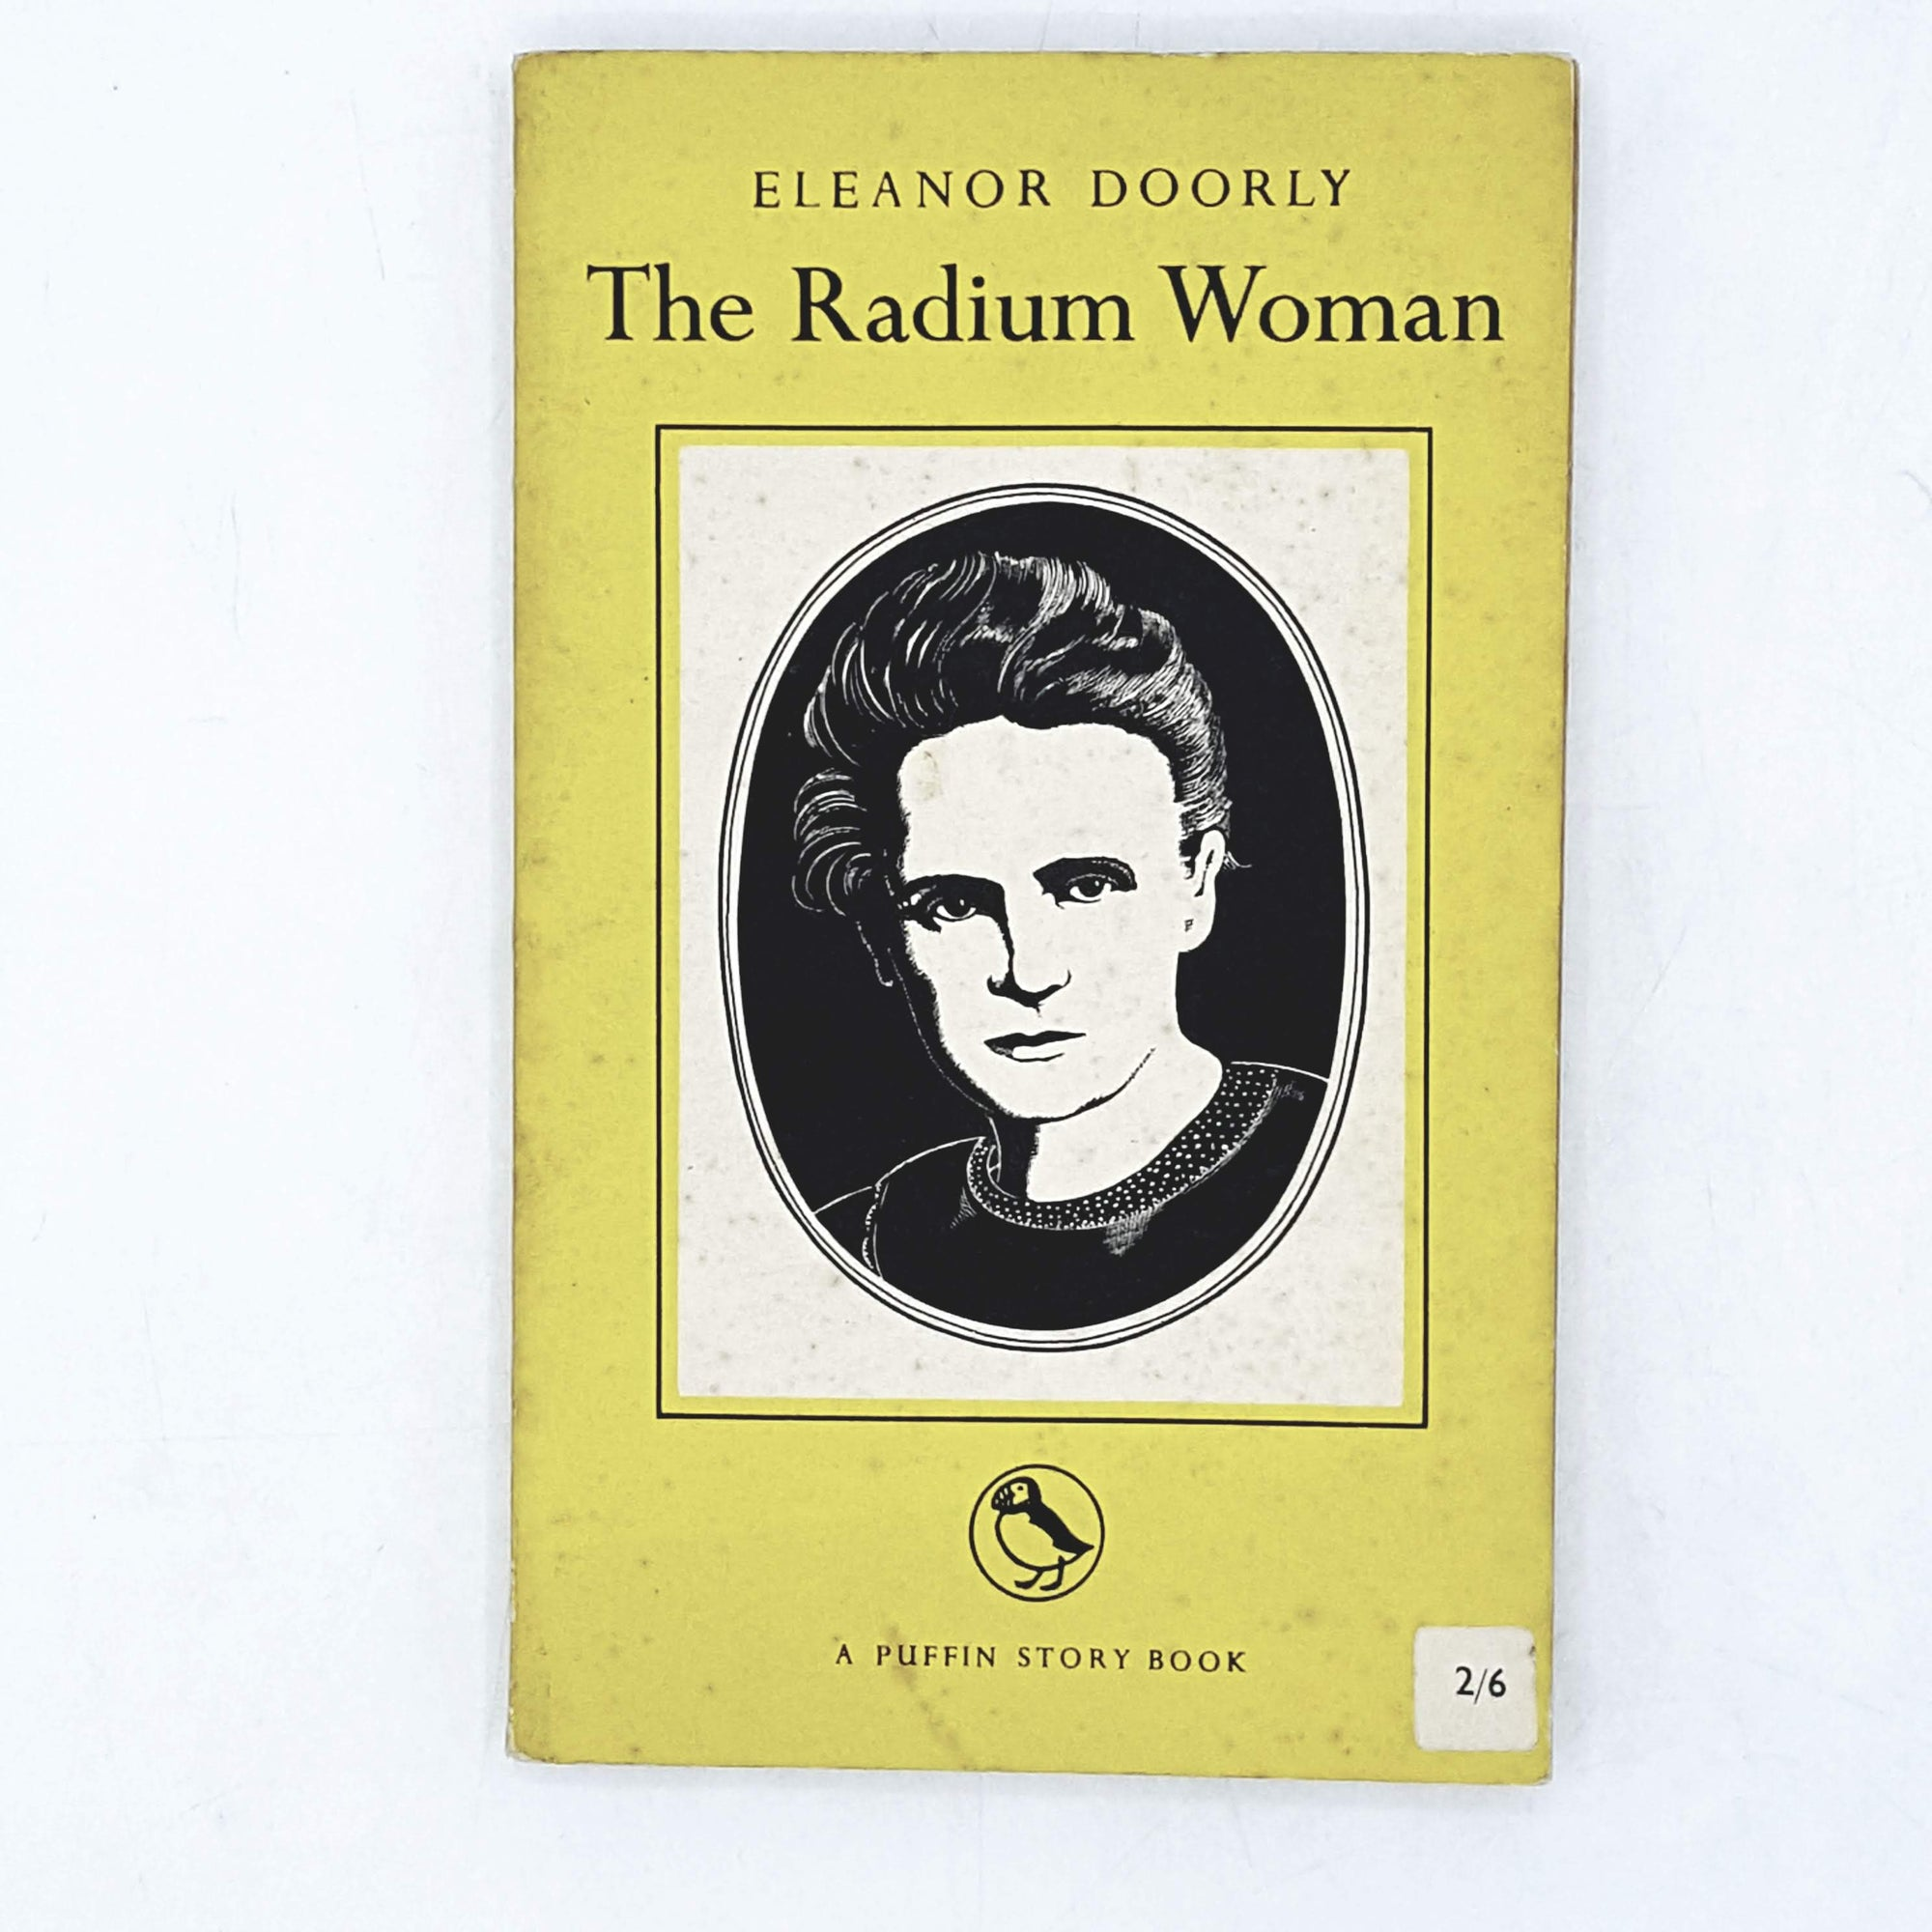 Vintage Puffin The Radium Woman by Eleanor Doorly 1953